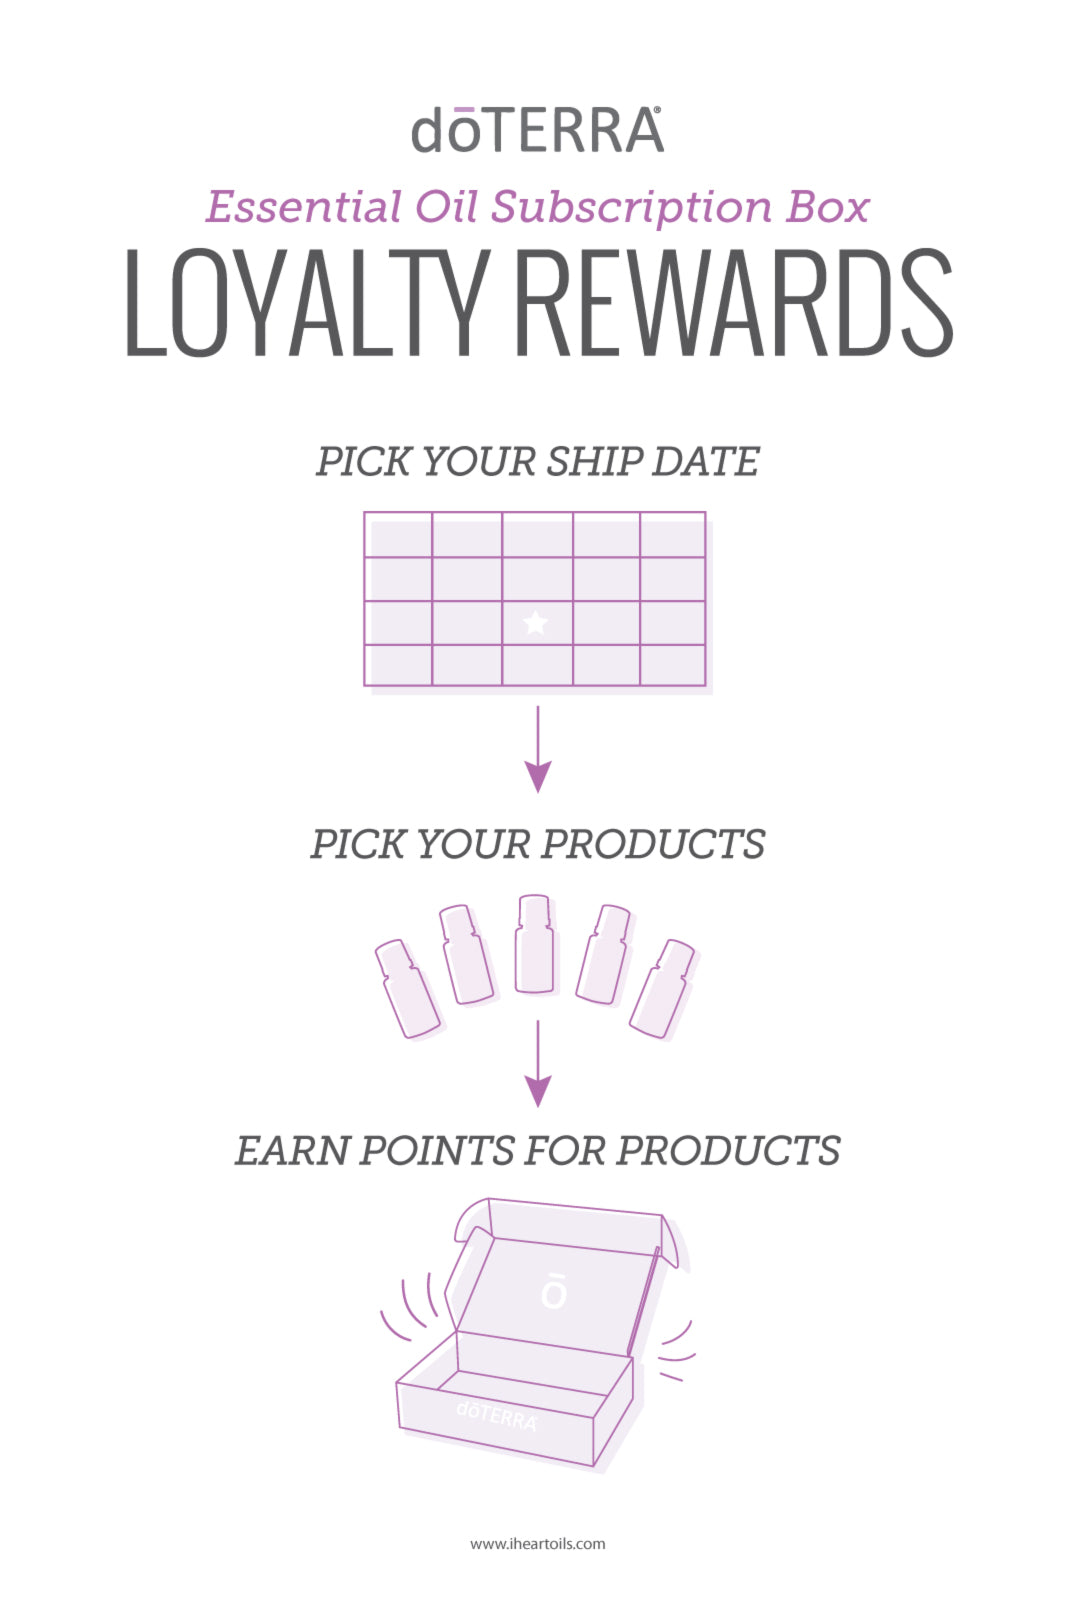 doTERRA Loyalty Rewards Essential Oil Subscription Box